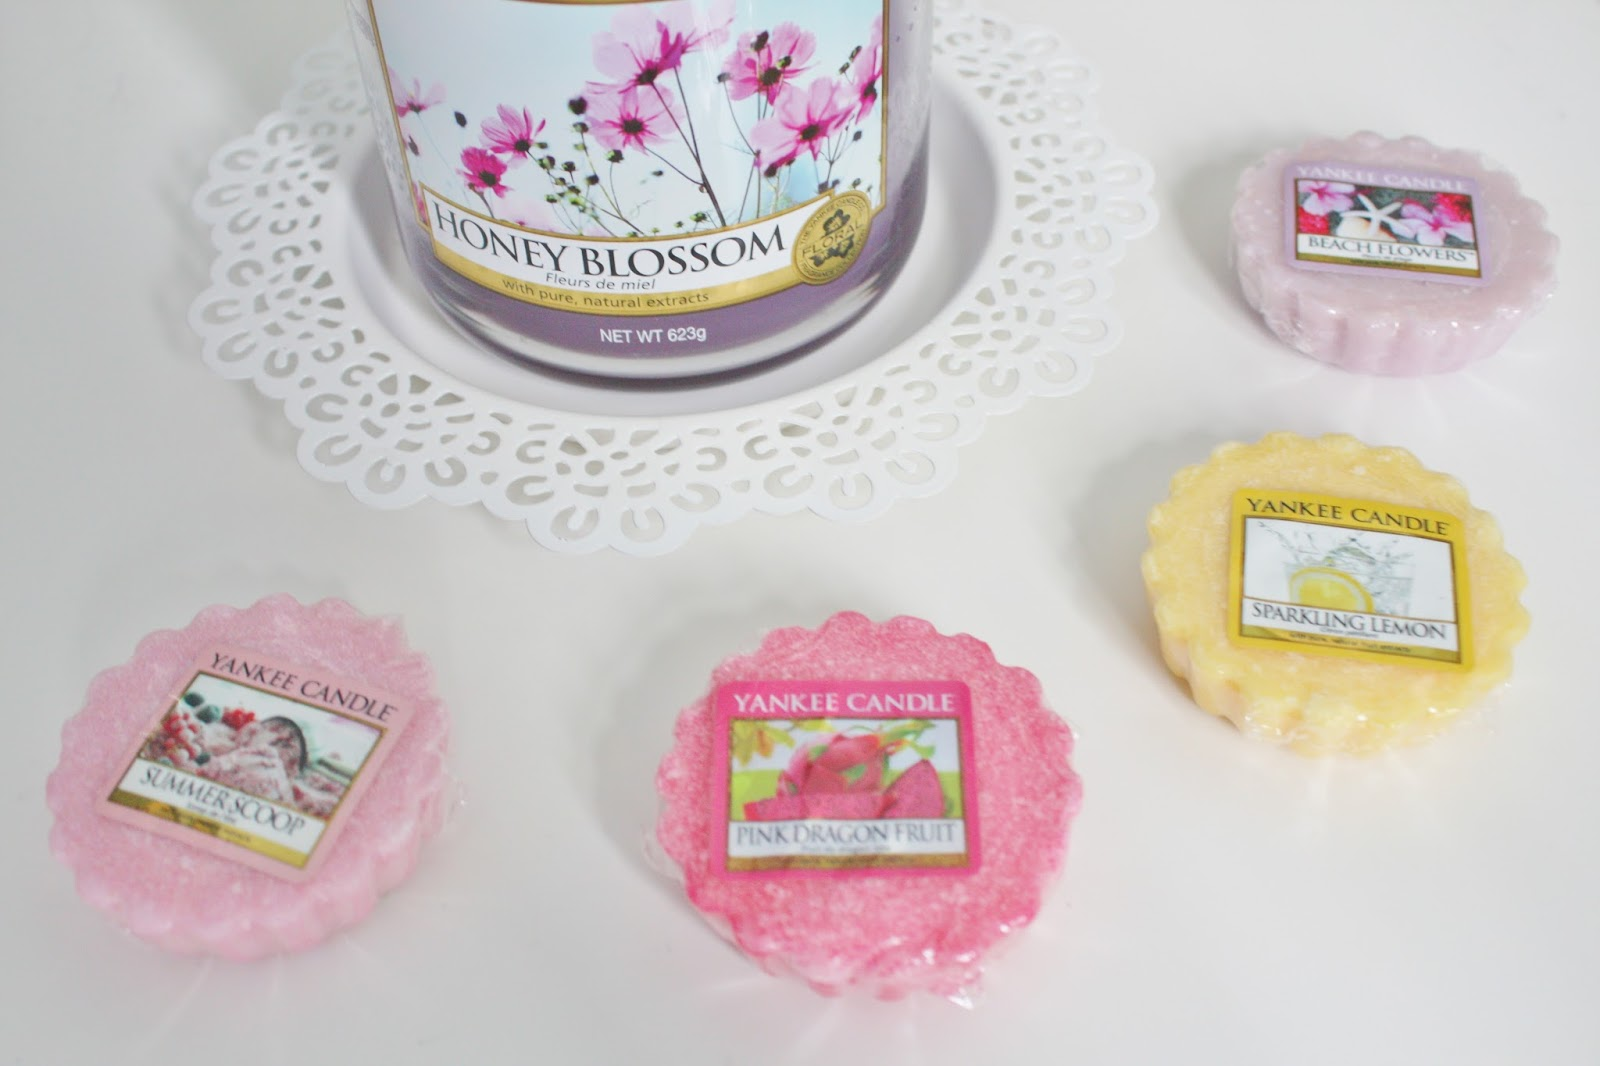 Yankee Candle Jars and Wax Tarts